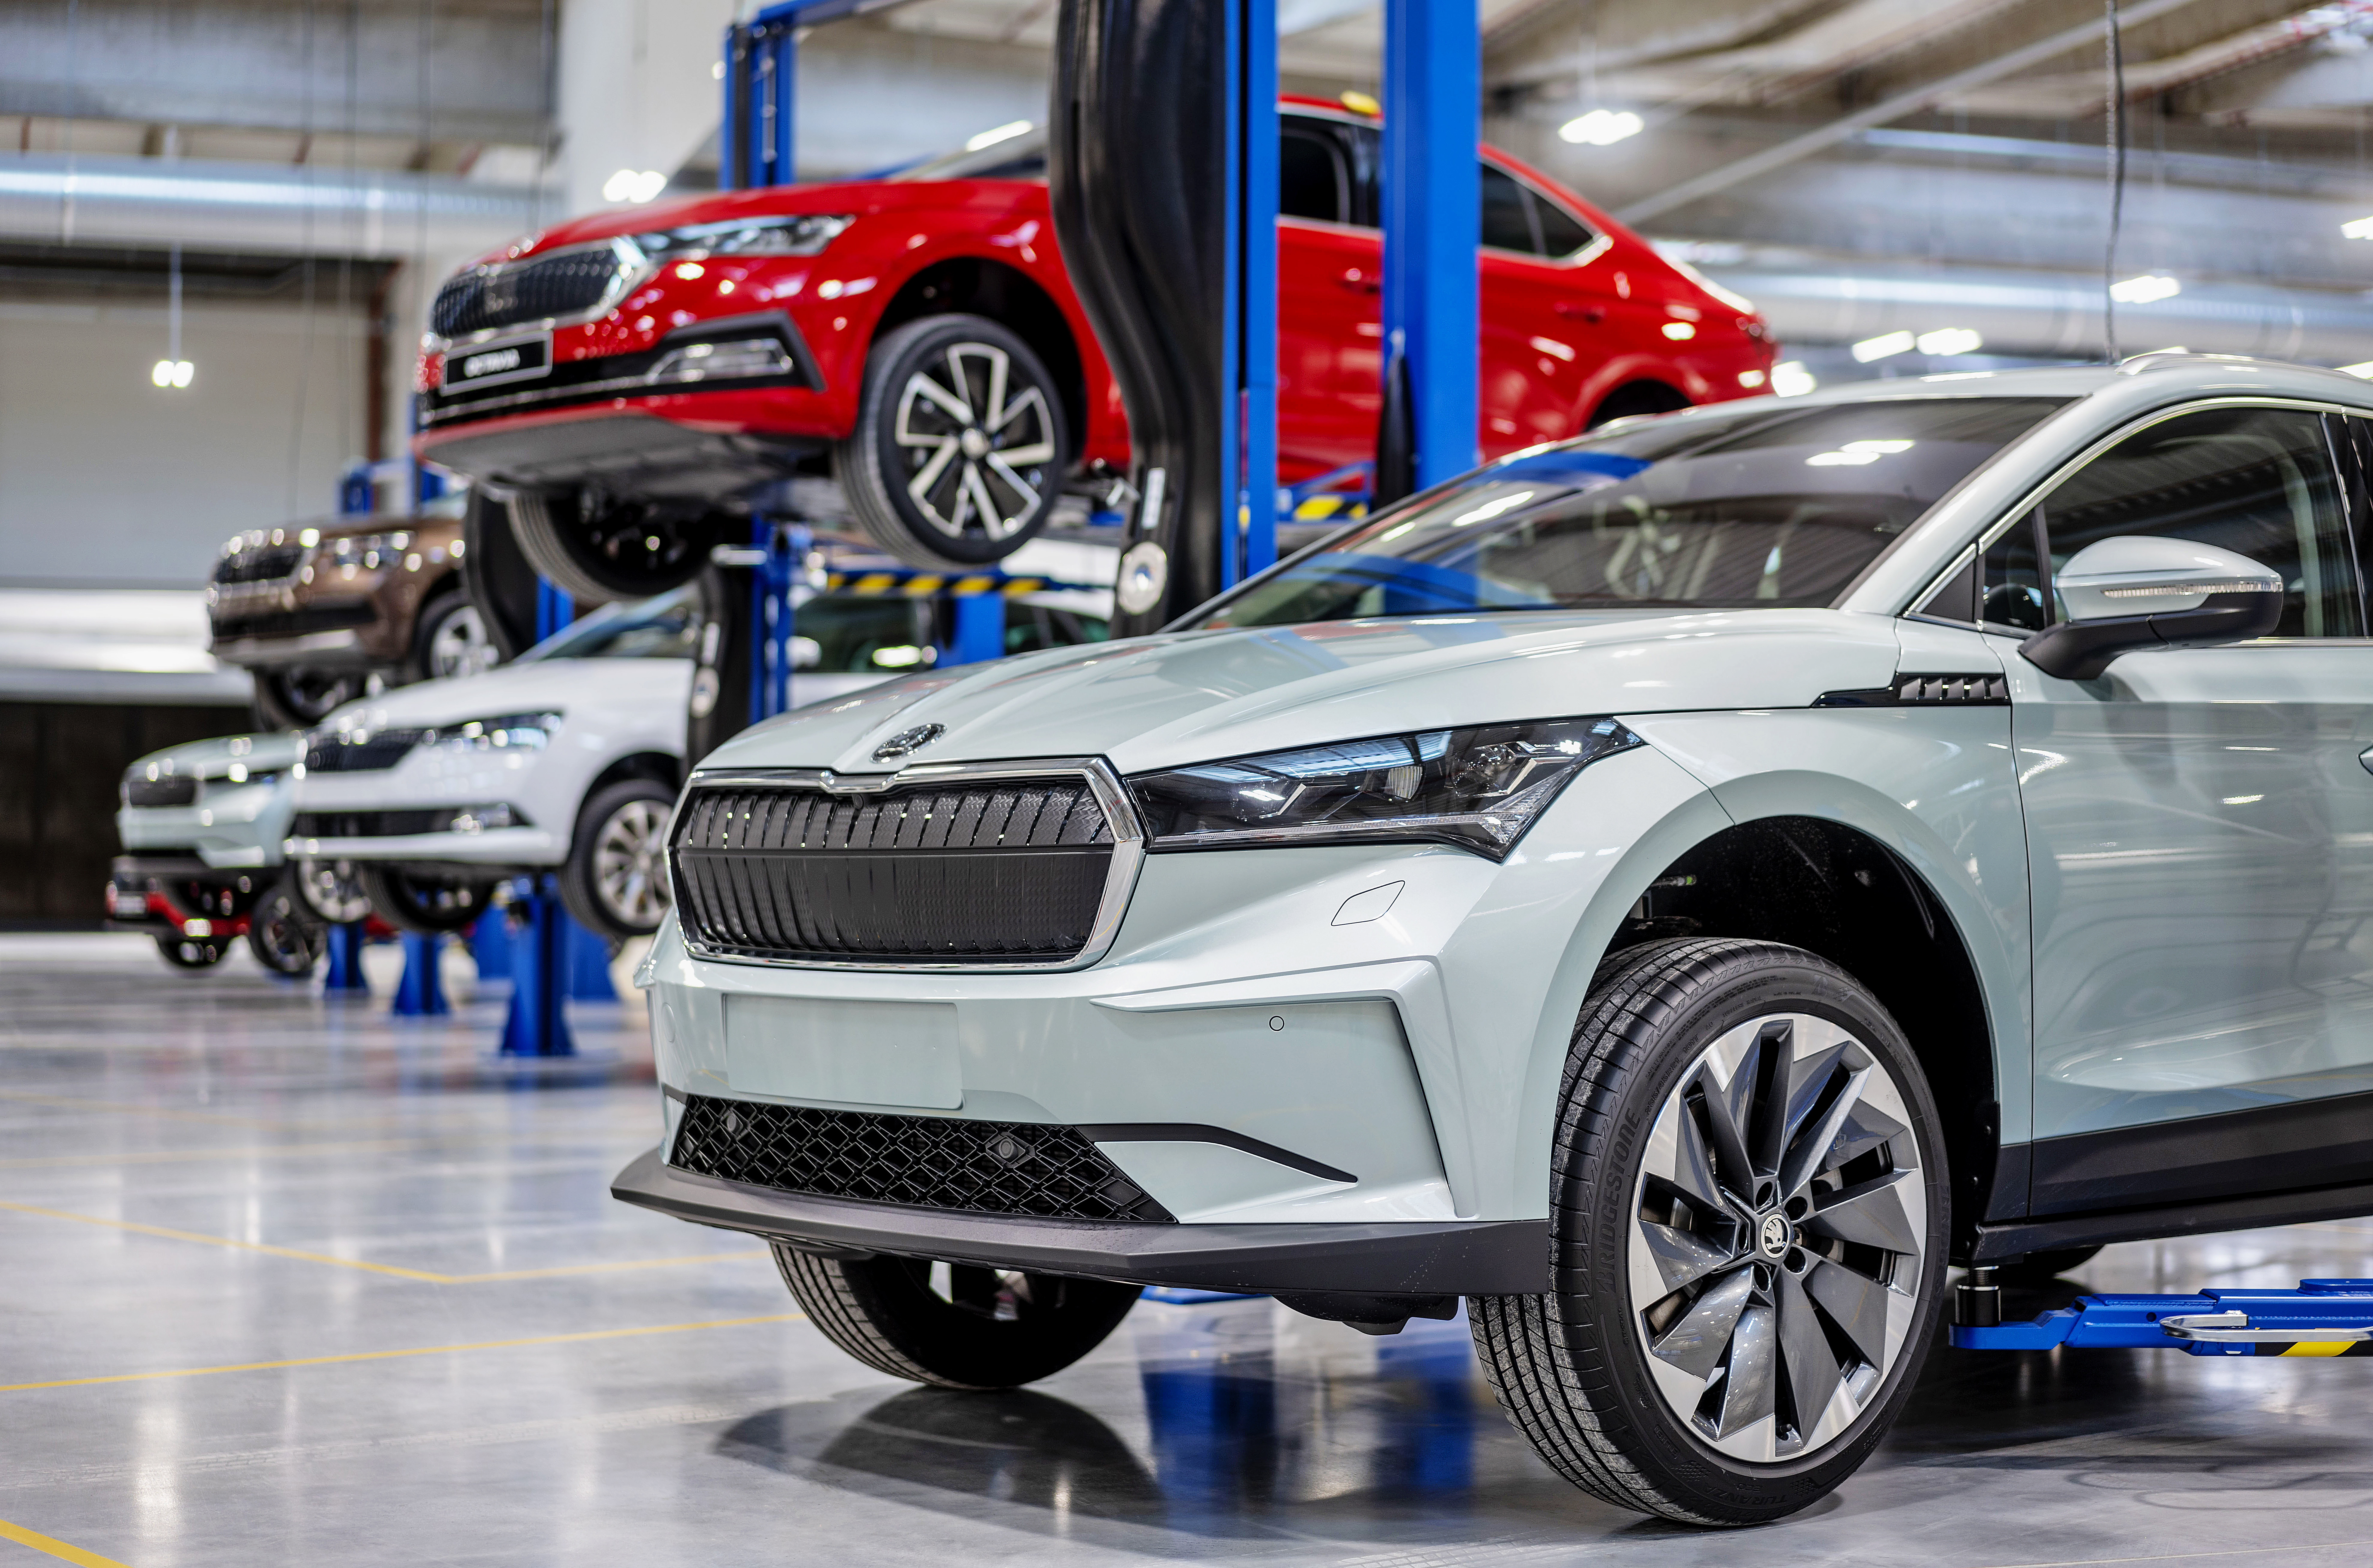 SKODA AUTO opens state-of-the-art new Central Pilot Hall at its Mladá Boleslav site - Image 1